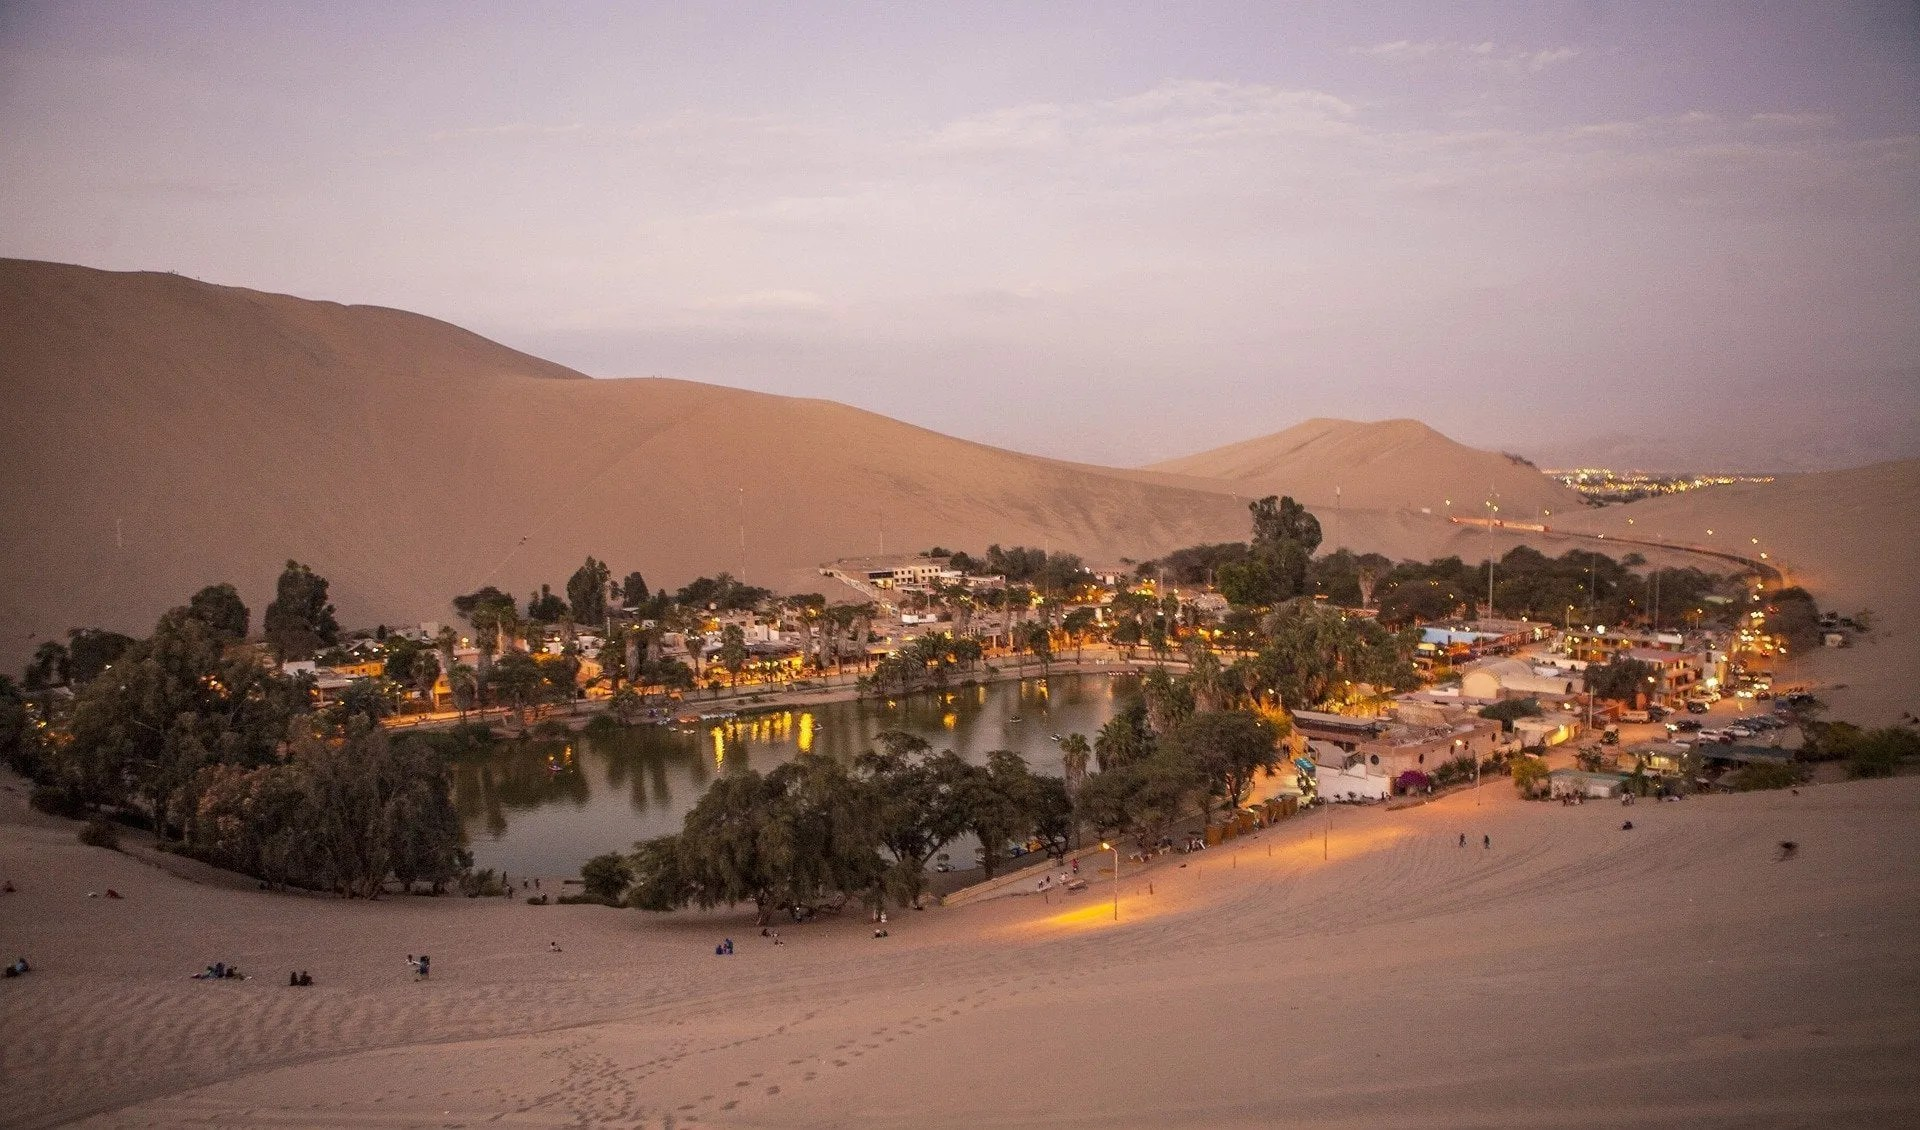 Sandboarding and Dune Buggy in Huacachina, Peru